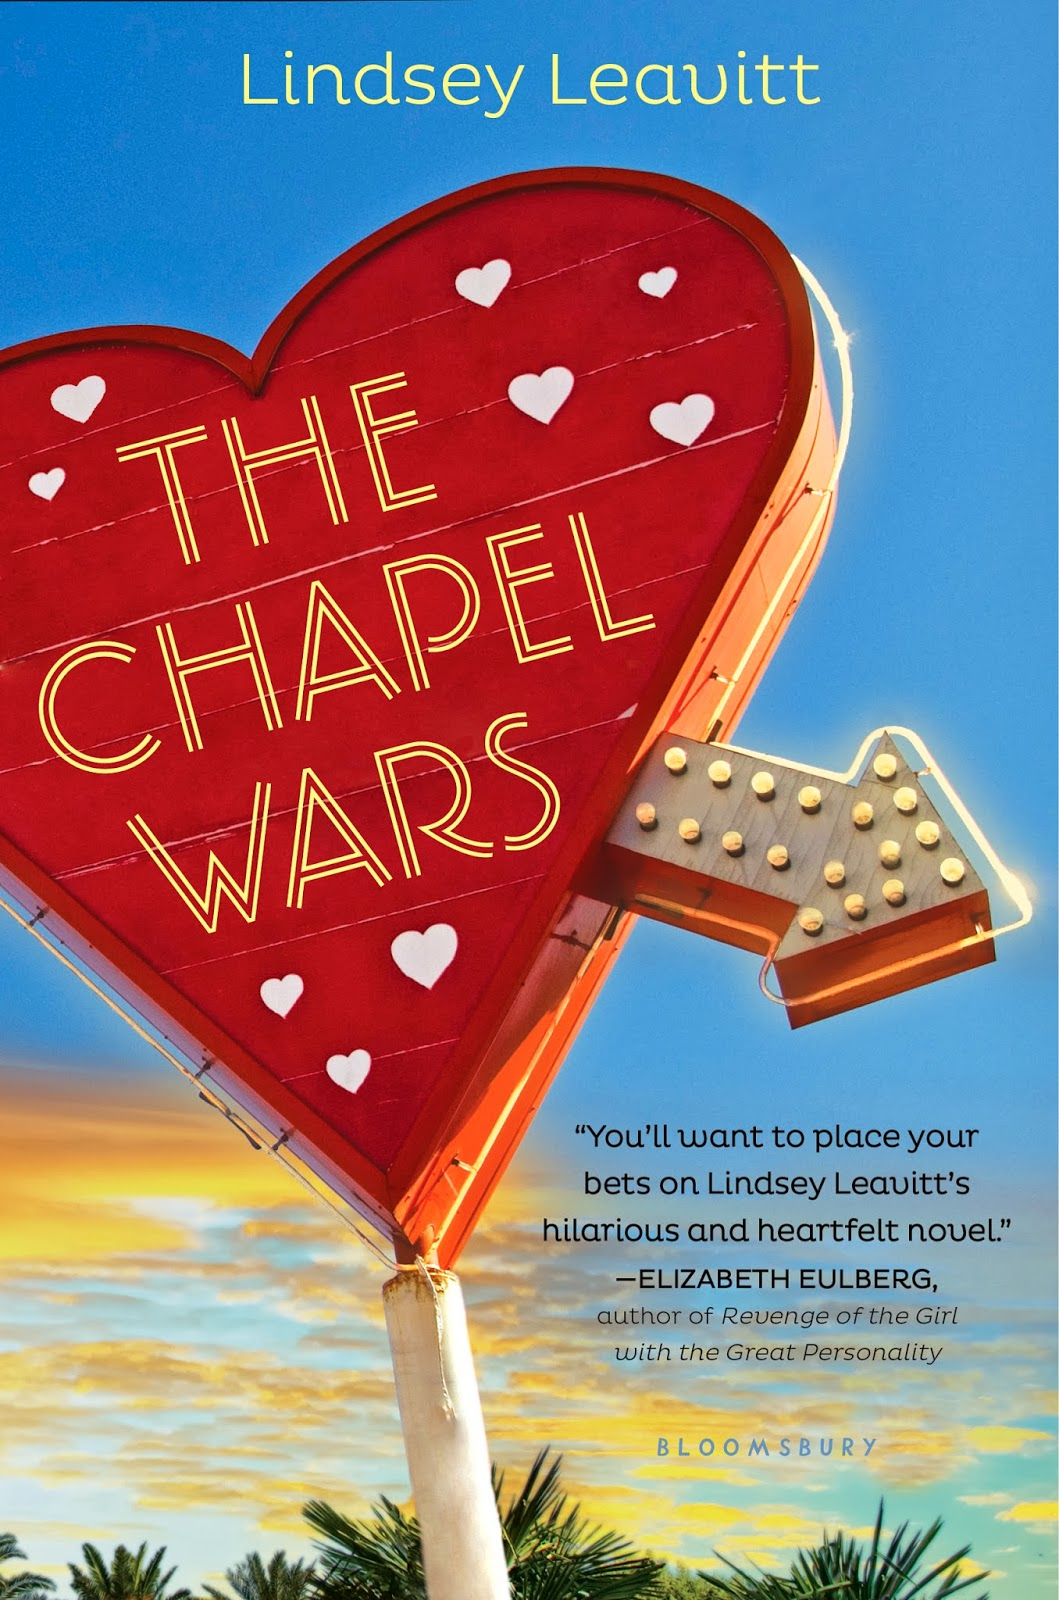 The Chapel Wars by Lindsey Leavitt  Amazon  |  Goodreads